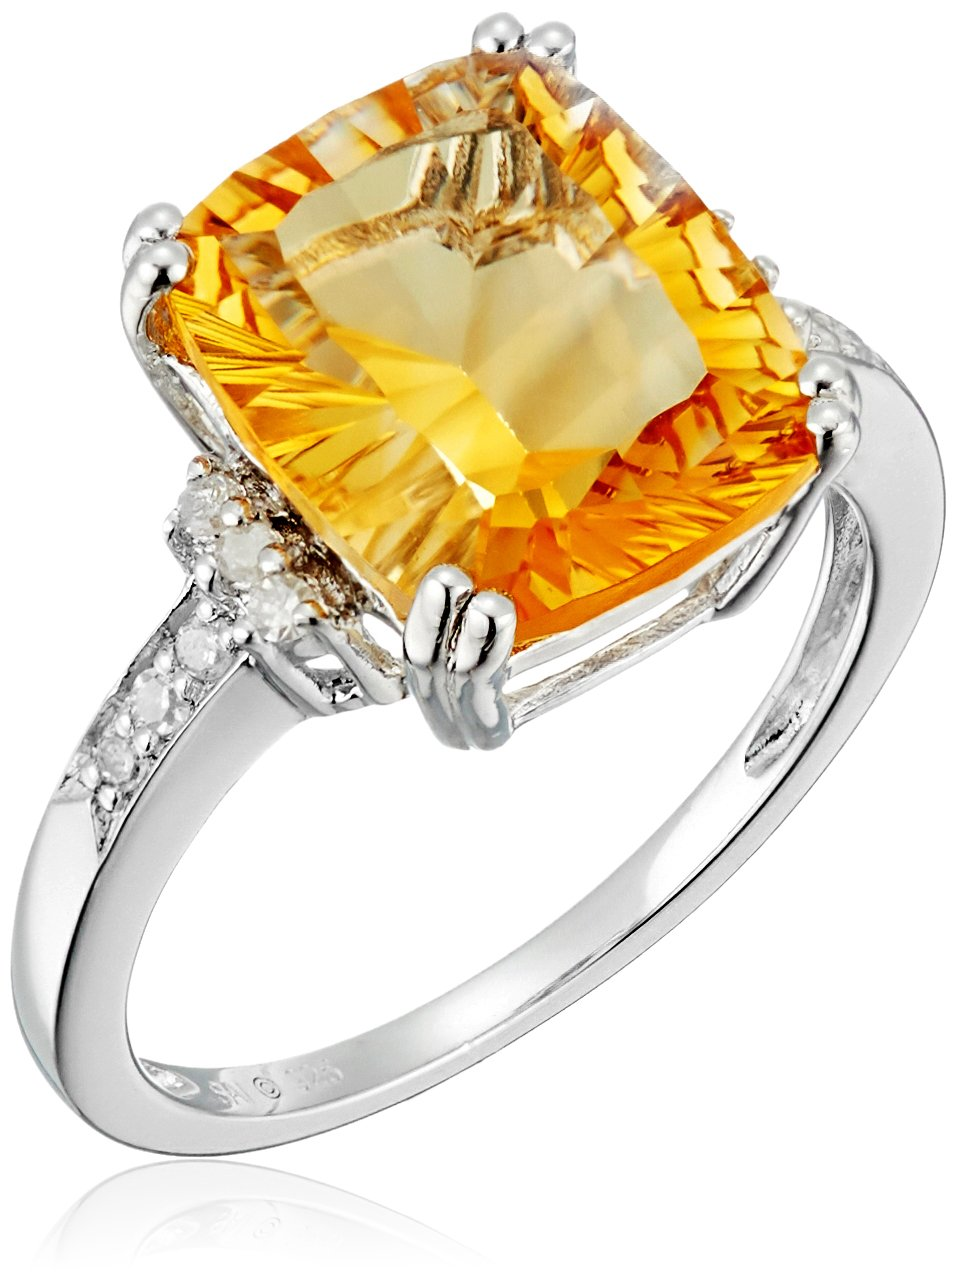 Sterling Silver Concave Cut Citrine and Diamond Cushion Ring (1/10cttw, I-J Color, I3 Clarity), Size 7